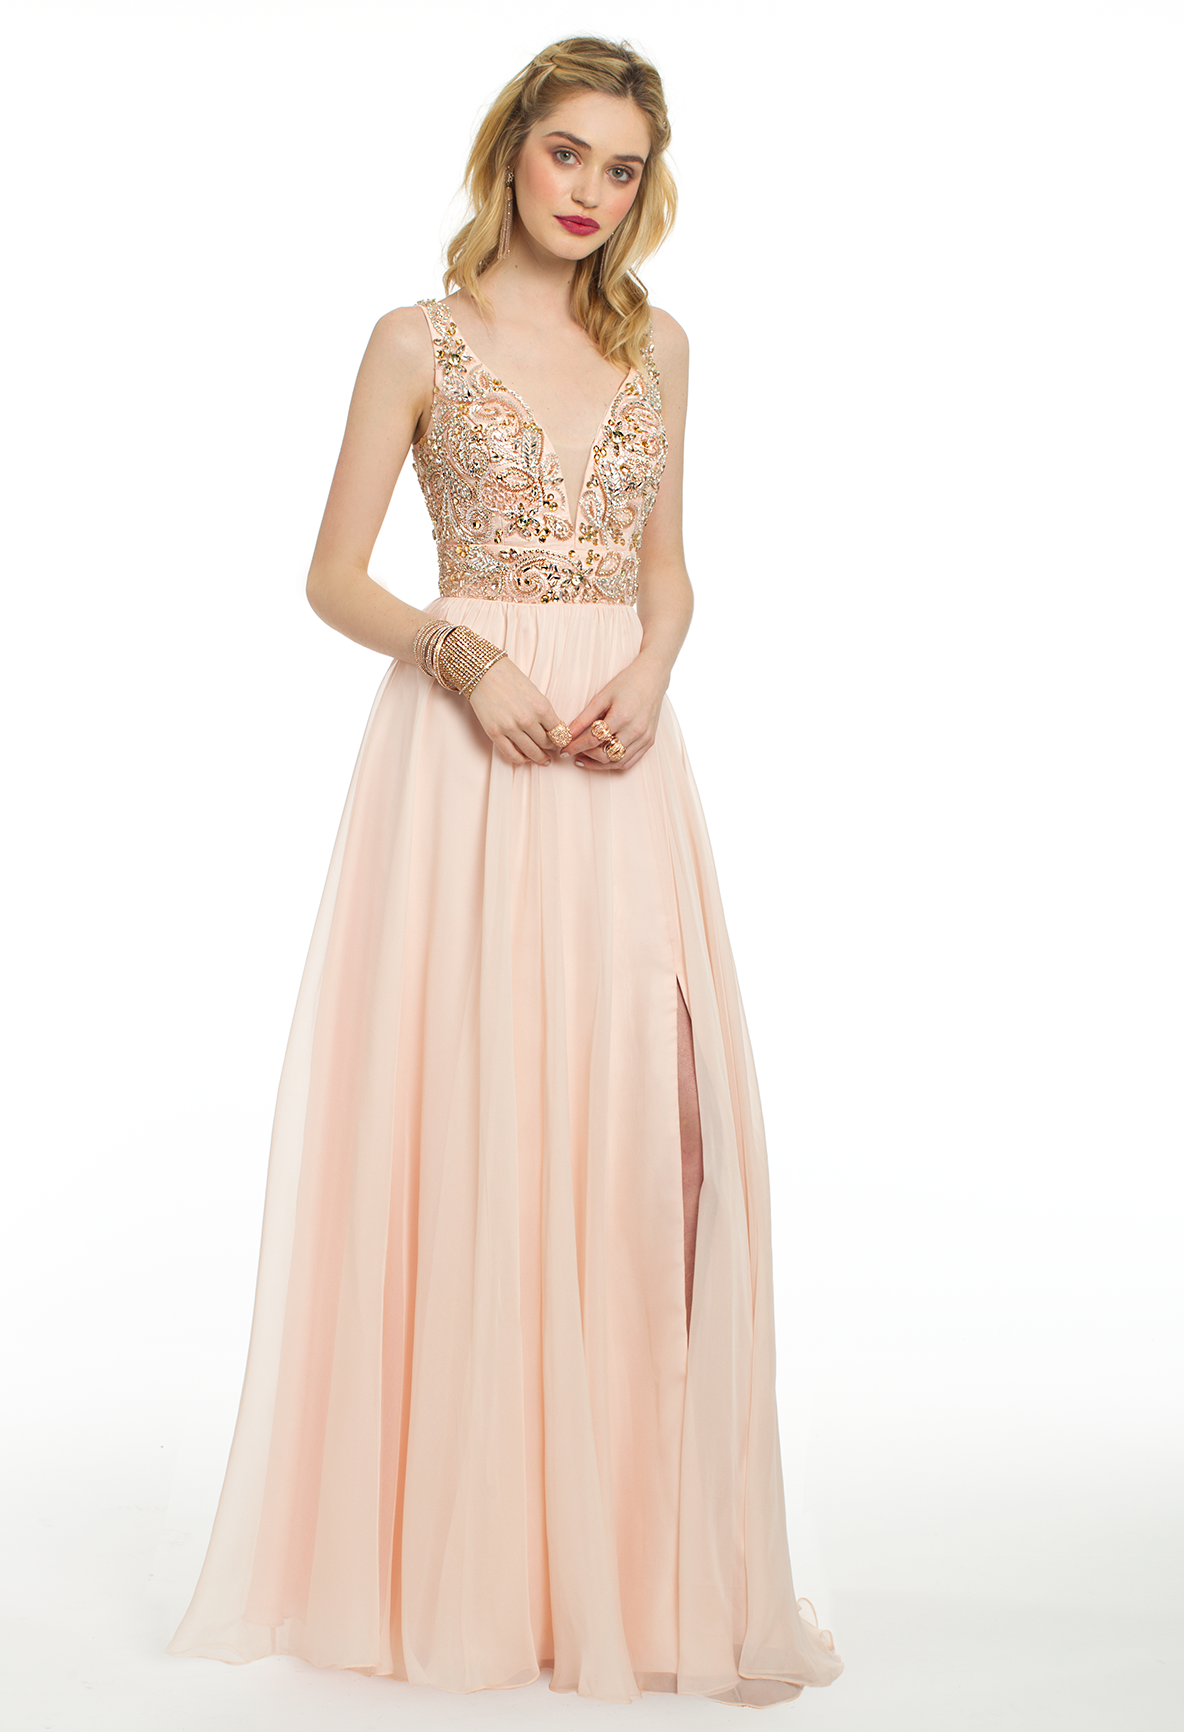 Turn heads all night in this long evening gown this dreamy prom